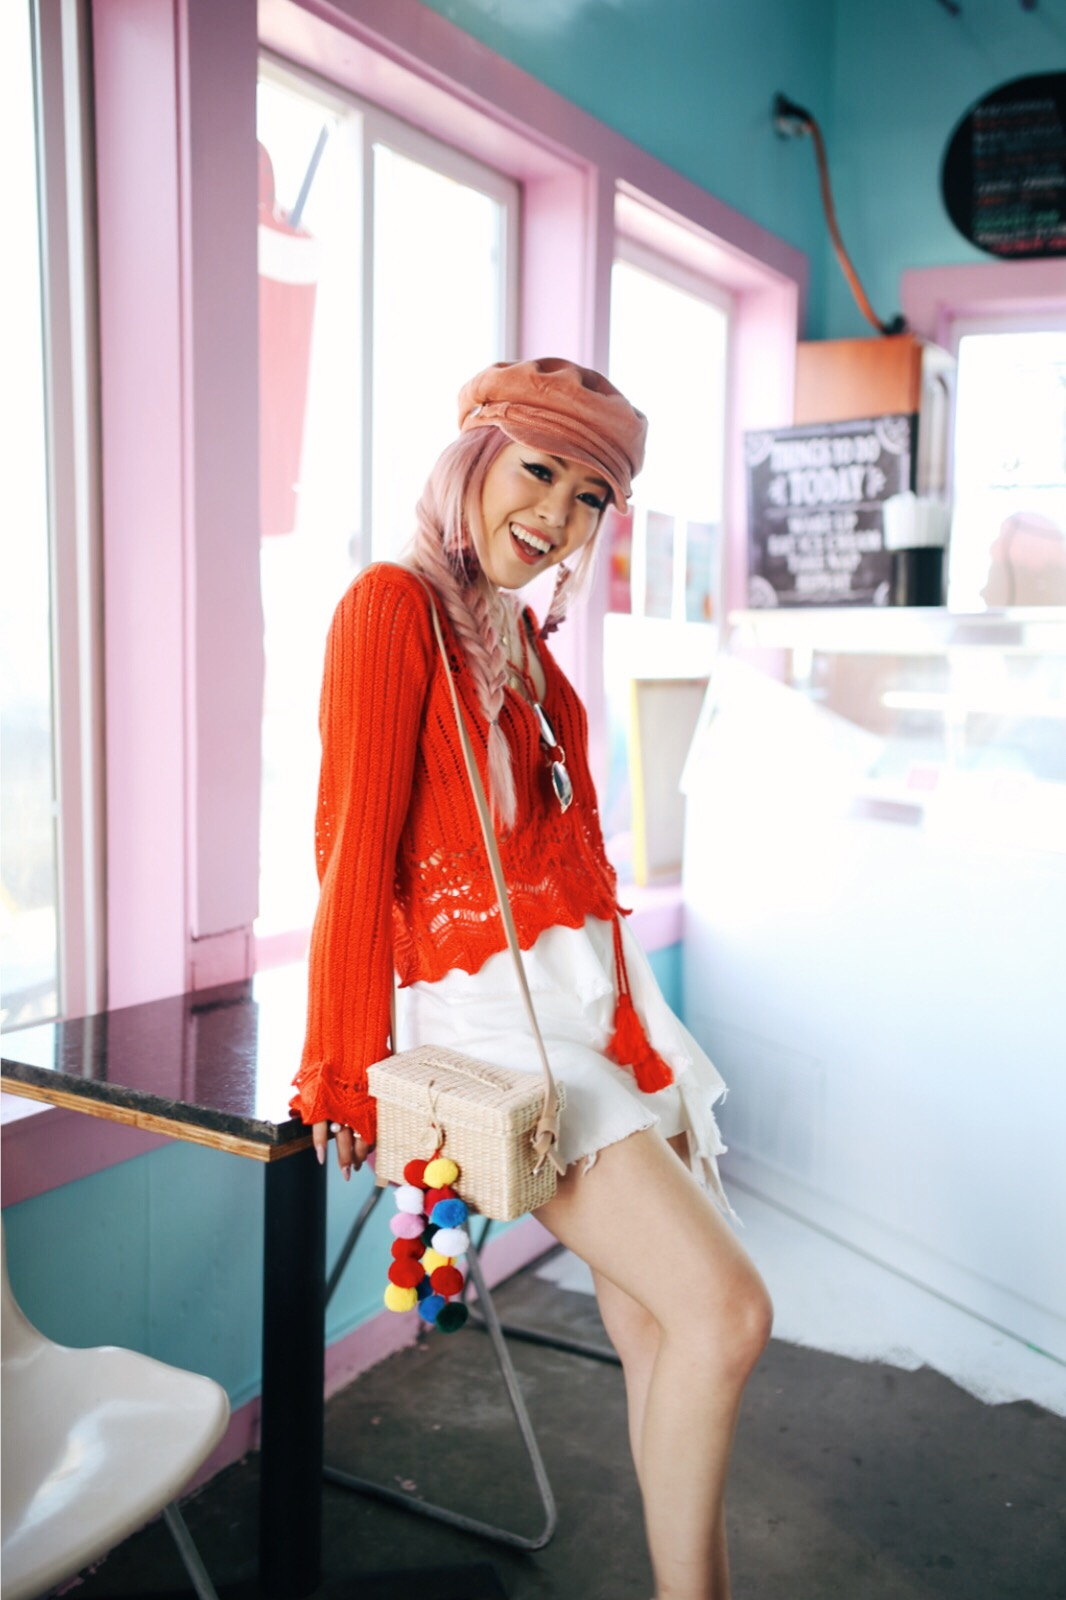 River Island Pink cord baker boy hat-Pink ombre tassel drop earrings-Red crotchet knit tassel crop top-White frill denim skort-White scallop block heel sandals-Shein Straw box bag with pom pom-Aikas Love Closet-Seattle Style Fashion Blogger-Japanese-Pink Hair-Side fishtail braid-summer style-smile 8